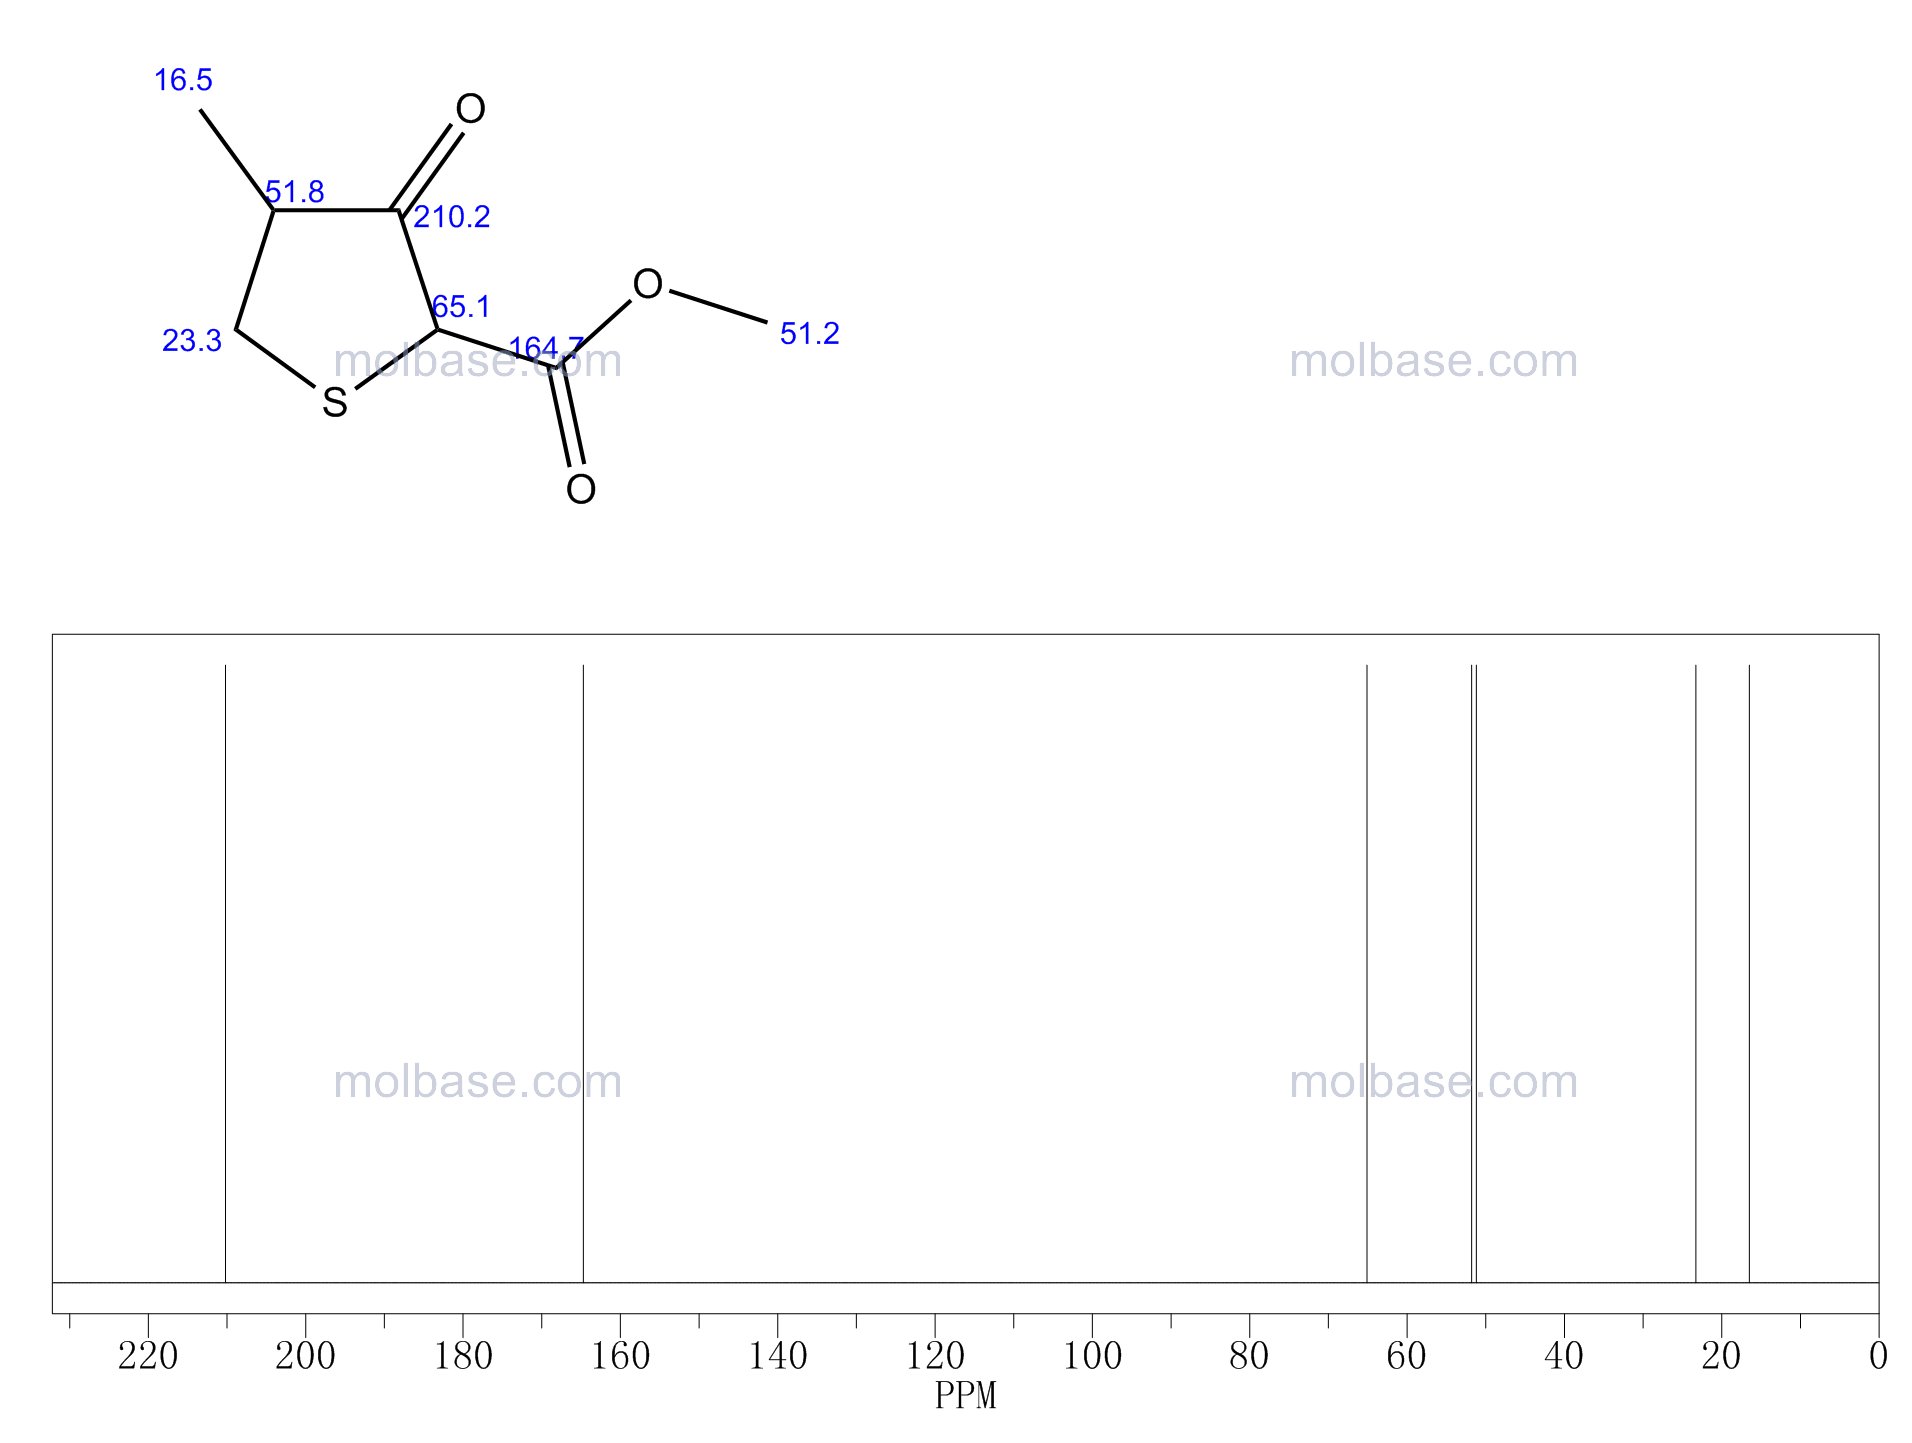 Methyl 4-methyl-3-oxothiolane-2-carboxylate NMR spectra analysis, Chemical CAS NO. 2689-70-5 NMR spectral analysis, Methyl 4-methyl-3-oxothiolane-2-carboxylate C-NMR spectrum